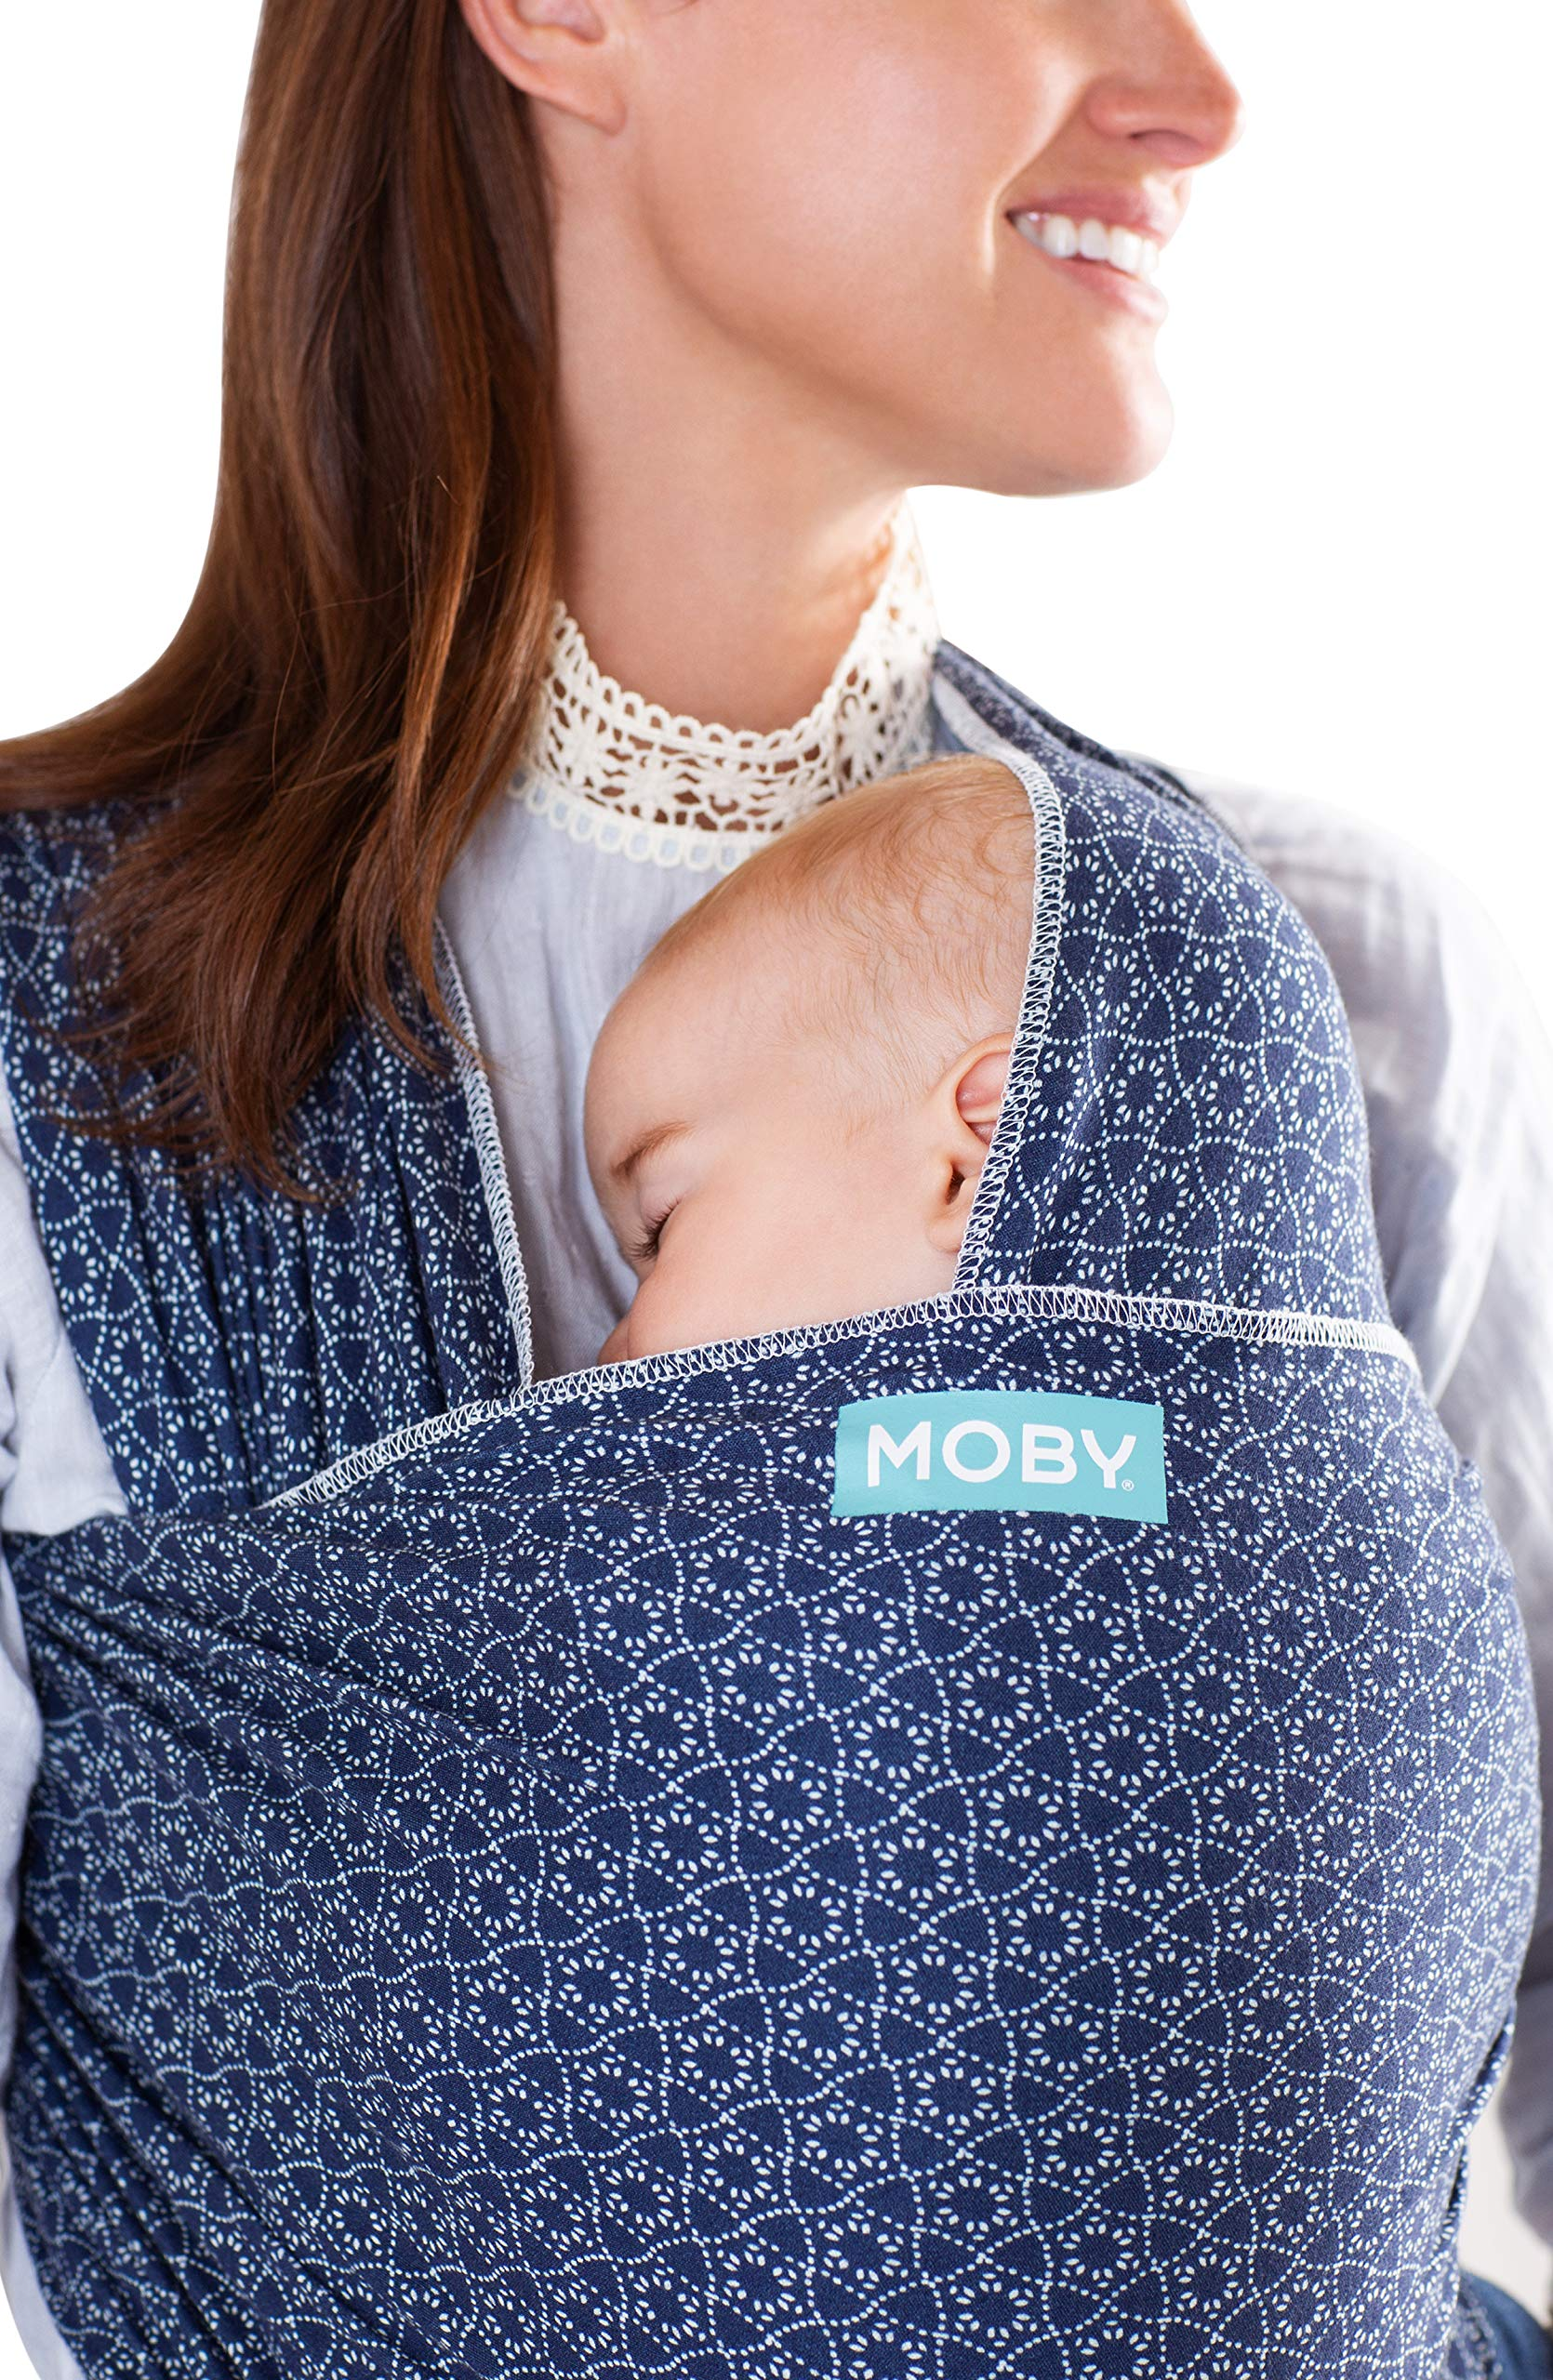 MOBY Evolution Baby Wrap Carrier for Newborn to Toddler up to 30lbs, Baby Sling from Birth, One Size Fits All, Breathable Stretchy Made from 70% Viscose 30% Cotton, Unisex Moby 70% Viscose / 30% Cotton Knit One-size-fits-all Grows with baby, from newborn to toddler 7